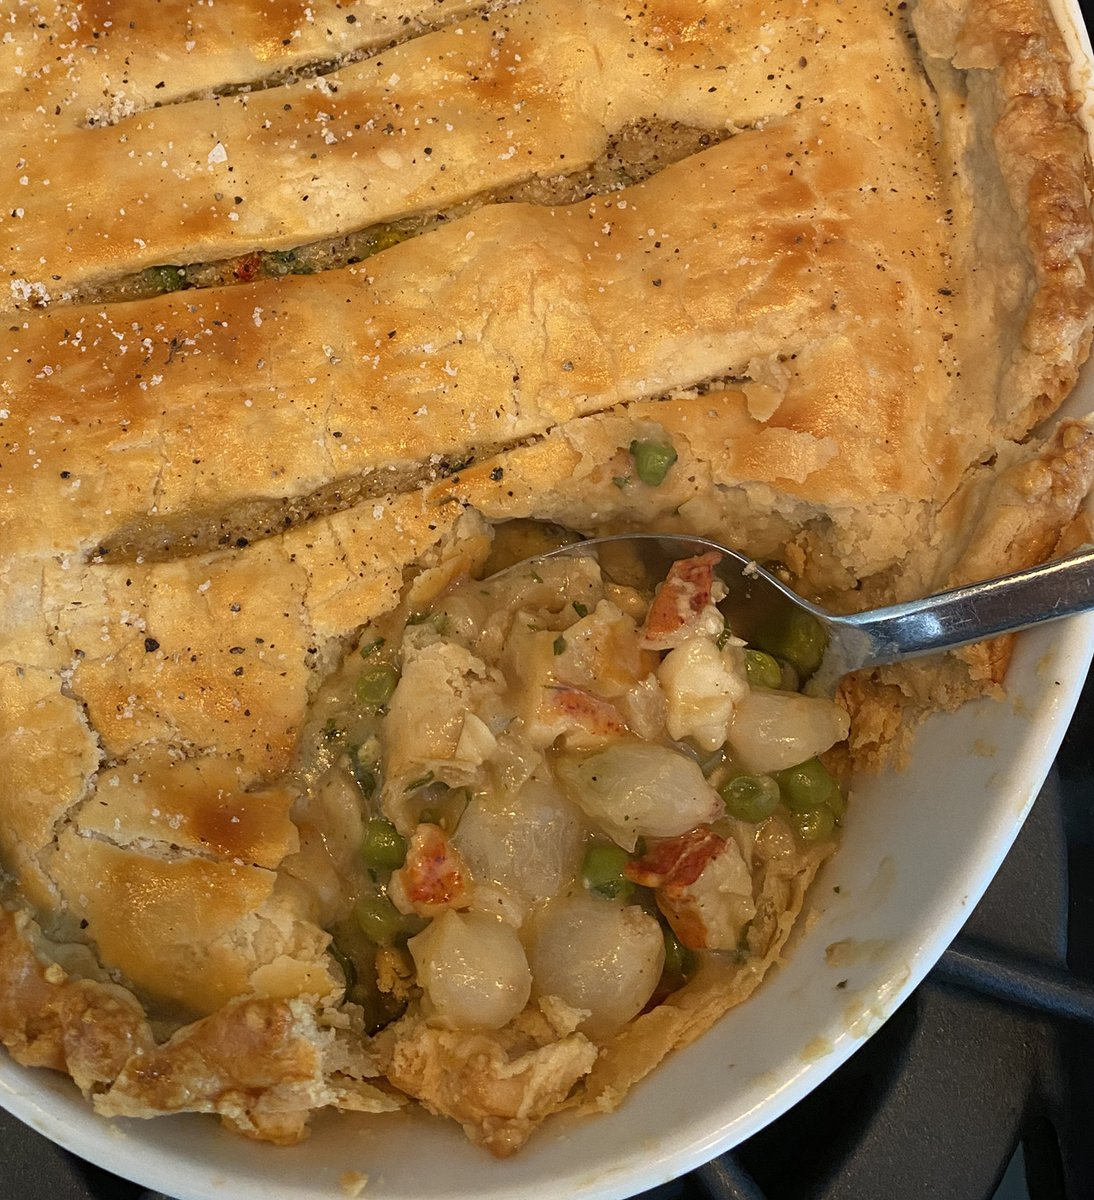 Lobster 🦞 Pot Pie is the perfect holiday dinner - it's an entire meal in one baking dish and it's scrumptious! Have a happy, healthy, and safe Labor Day weekend everyone!  #treatyourself